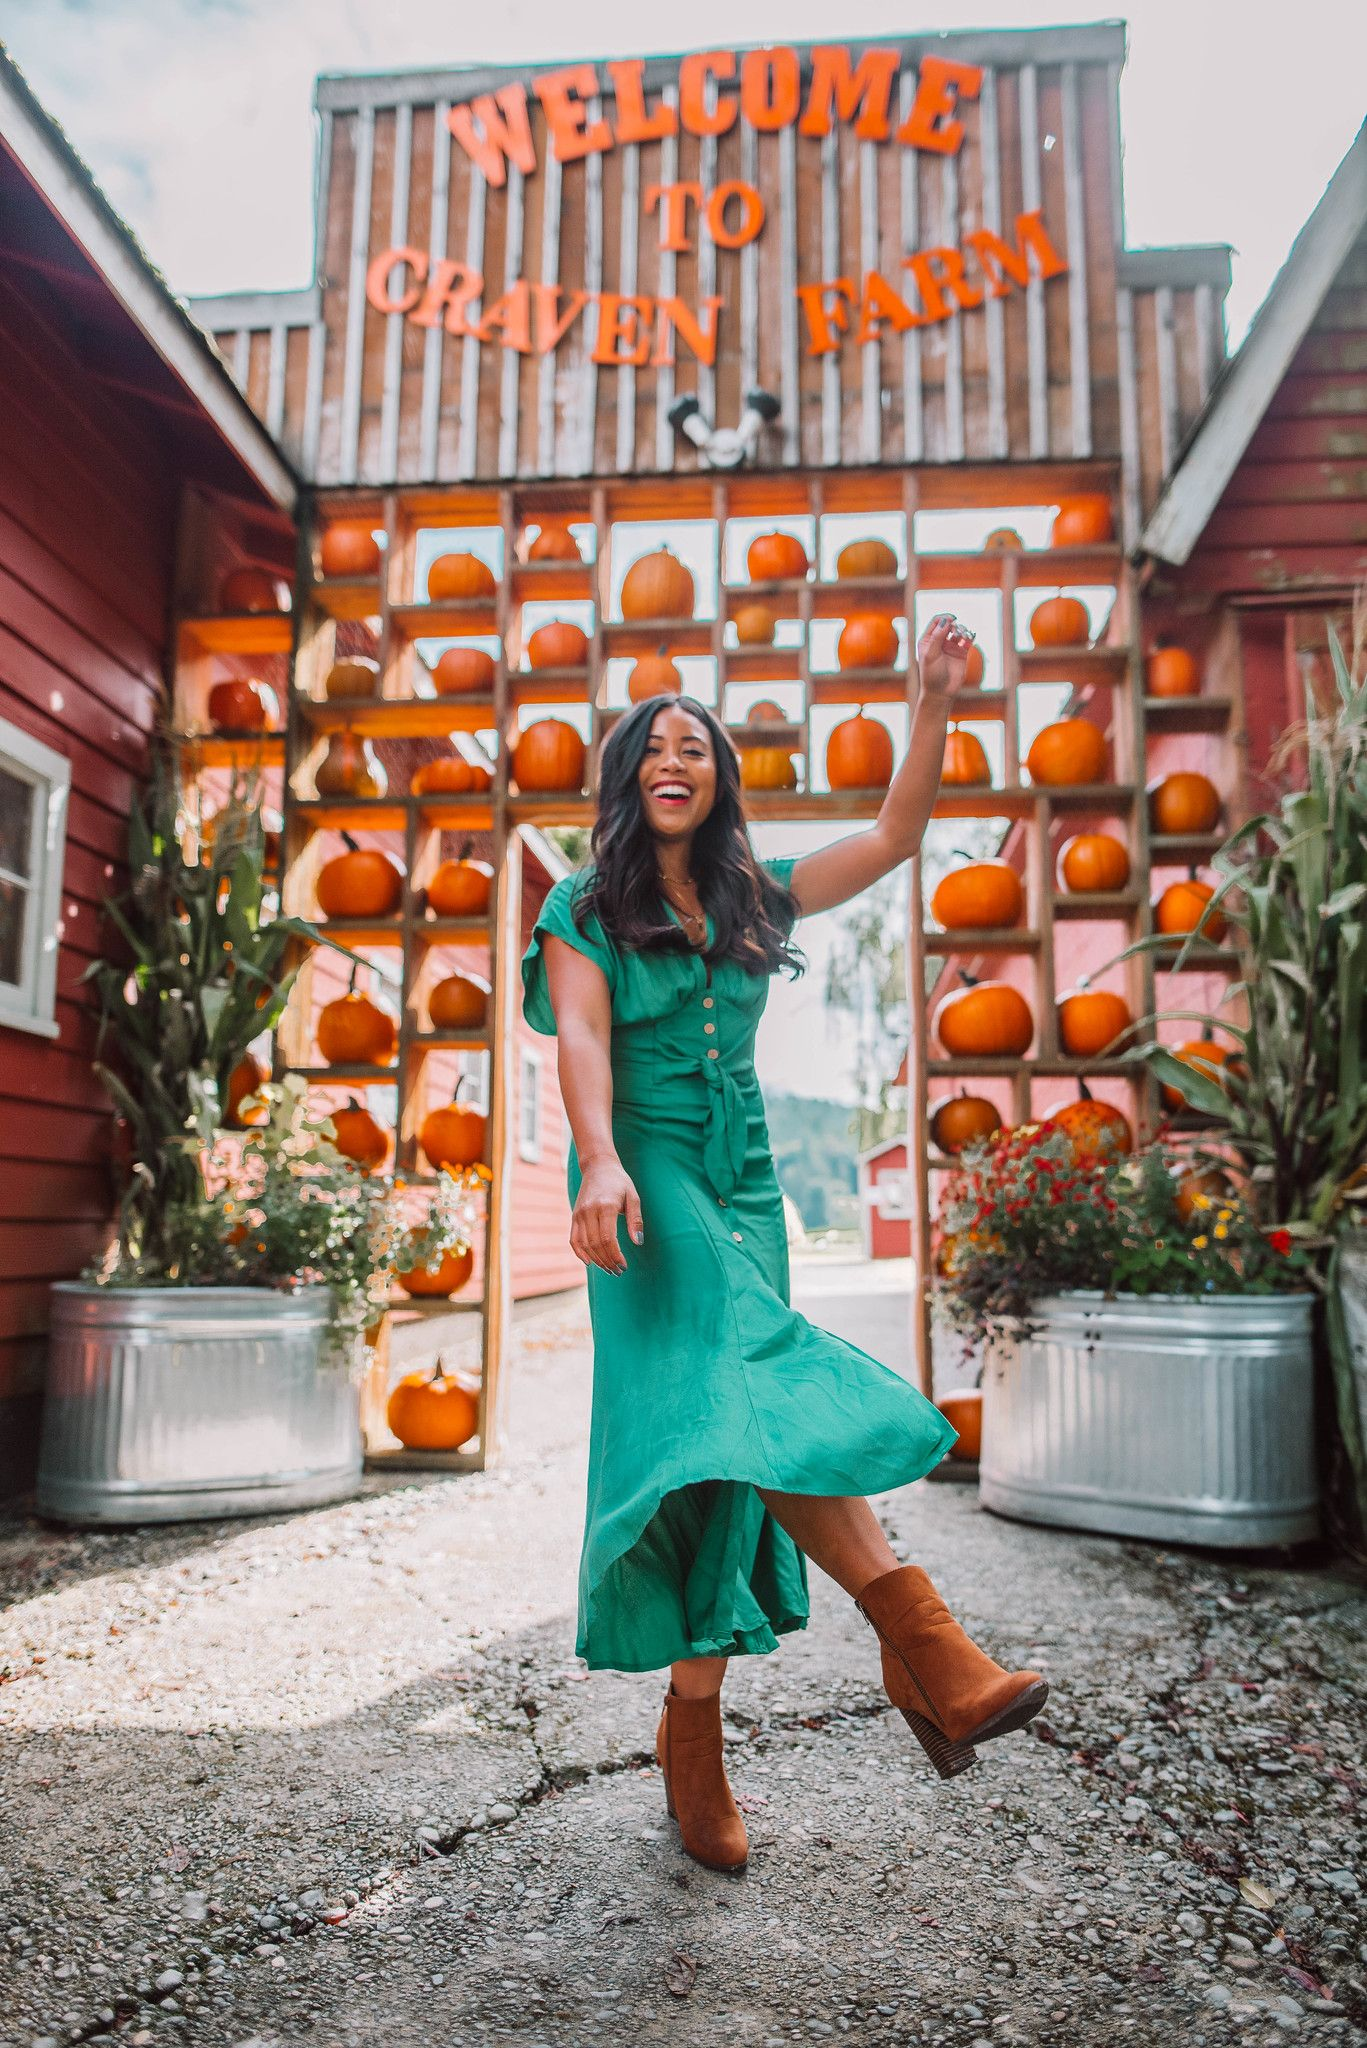 How to Pose at a Pumpkin Patch: 8 Poses You Can Try - Emma's Edition #pumpkinpatchoutfitwomen